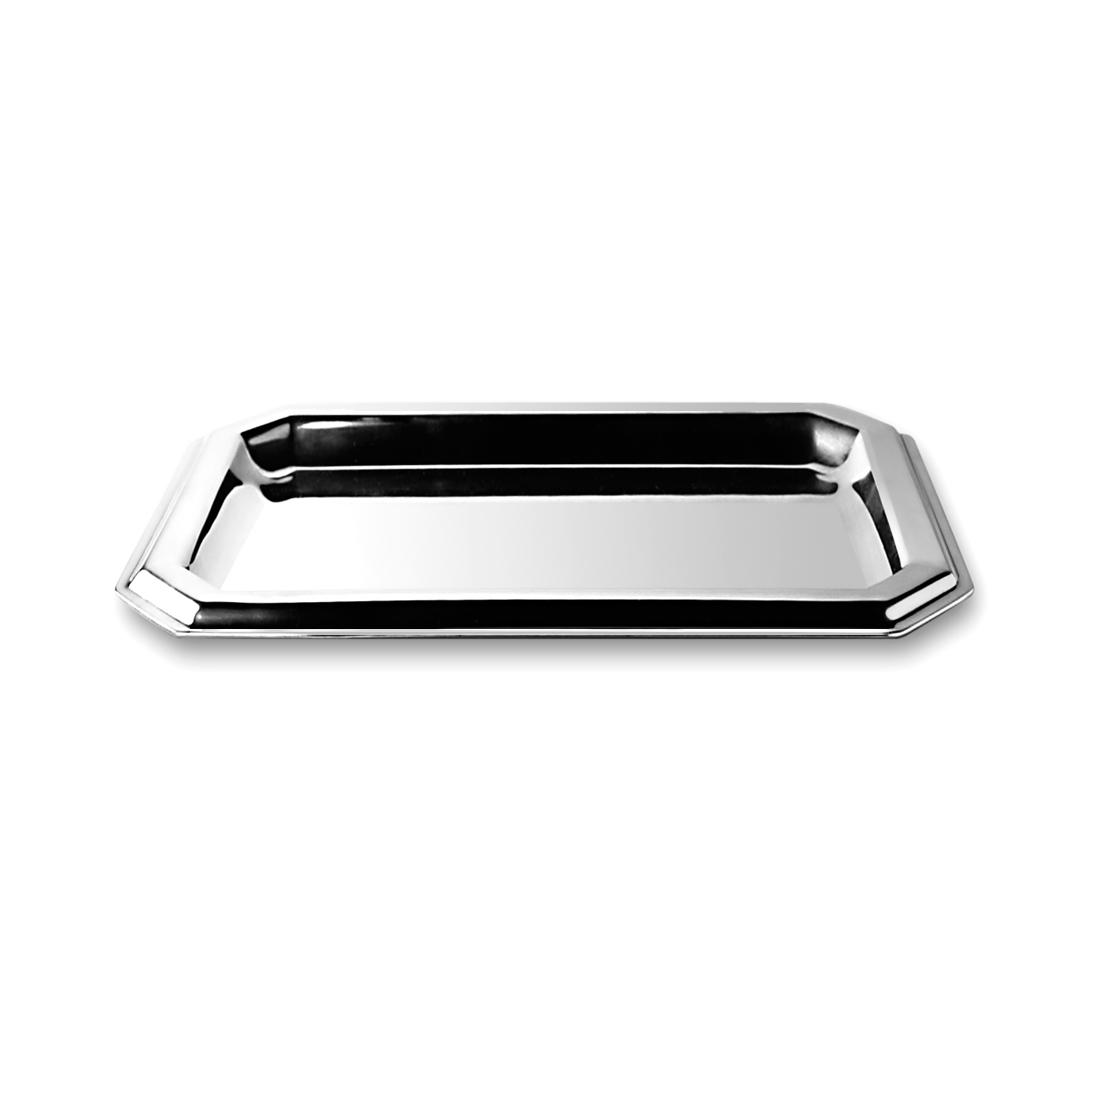 Orfevra Silver Plated Letter Tray